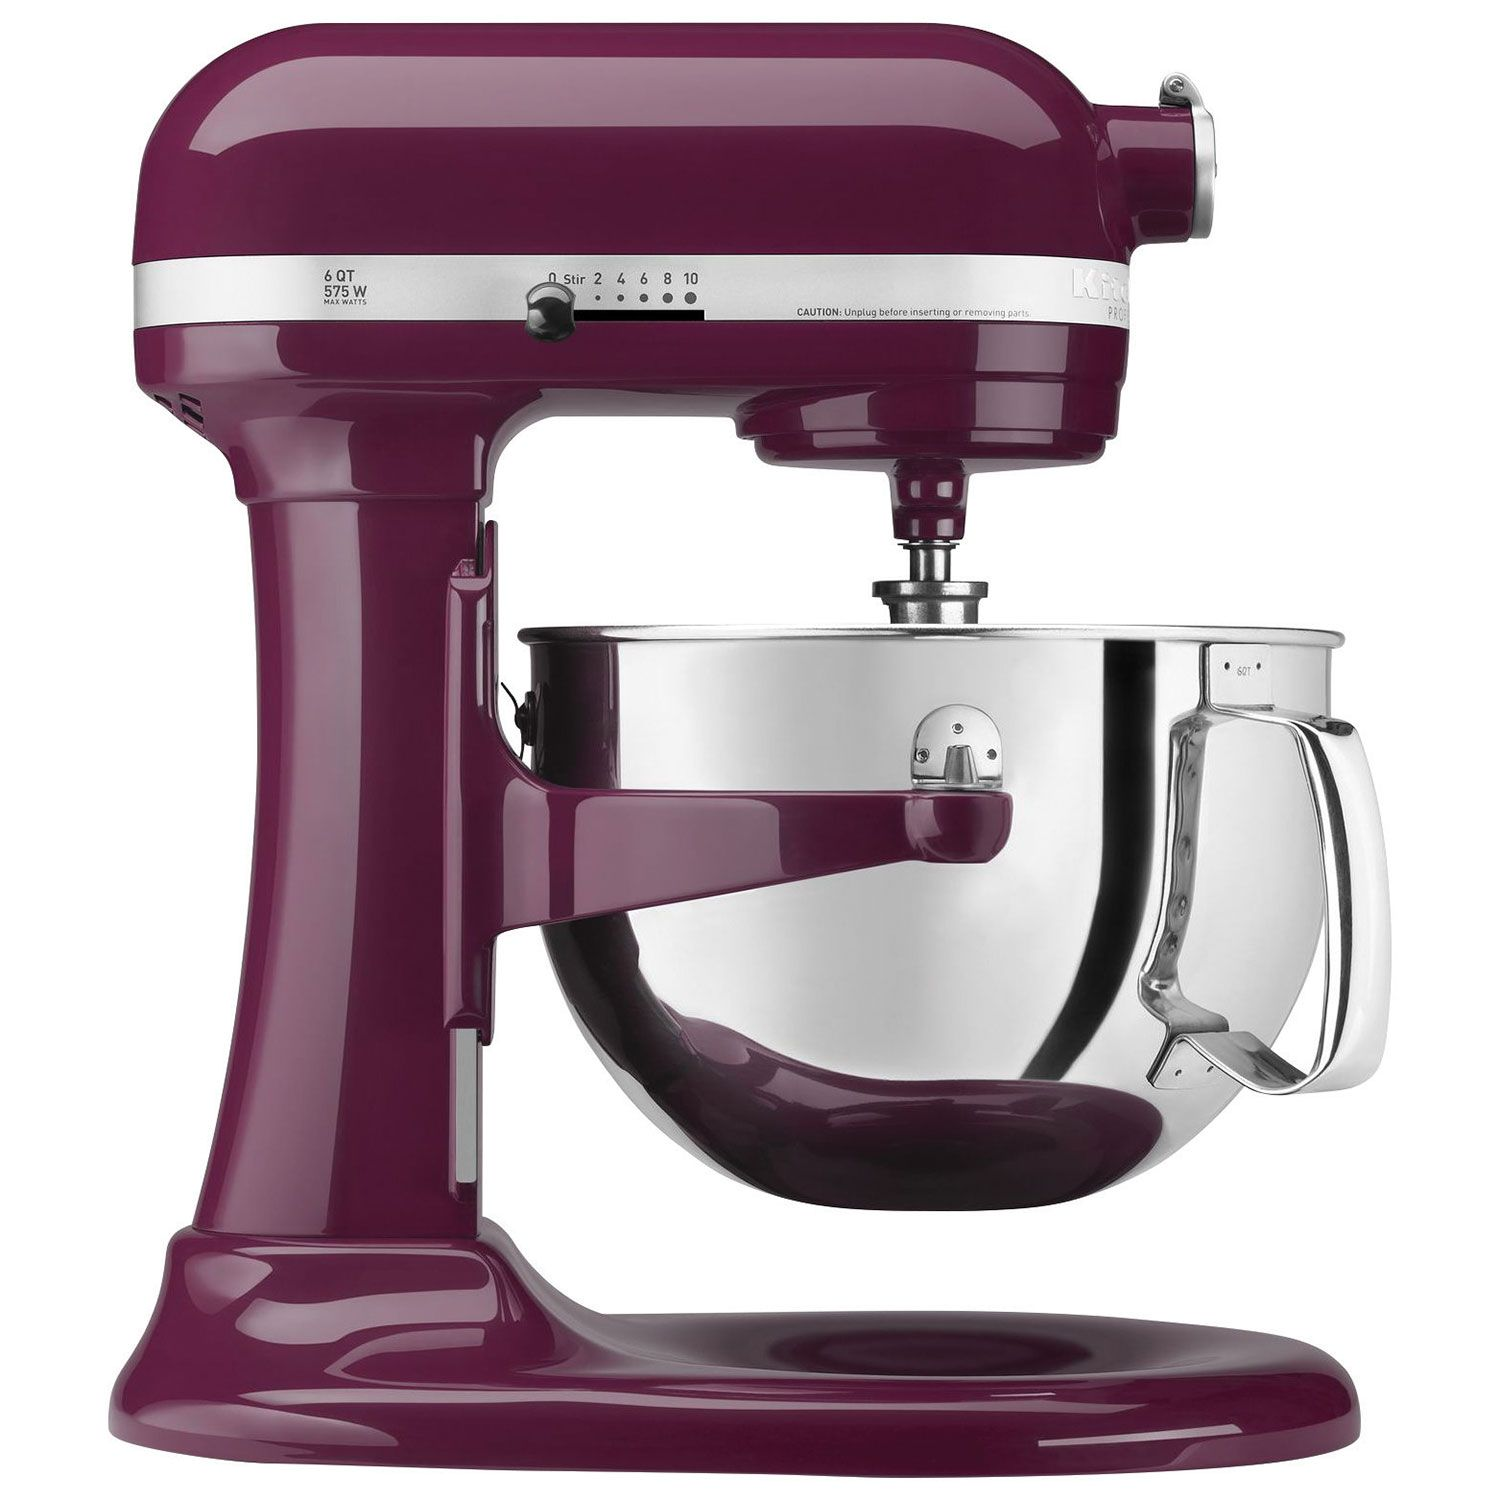 Kitchenaid Professional 600 Lift Bowl Stand Mixer 5 7l 575 Watt